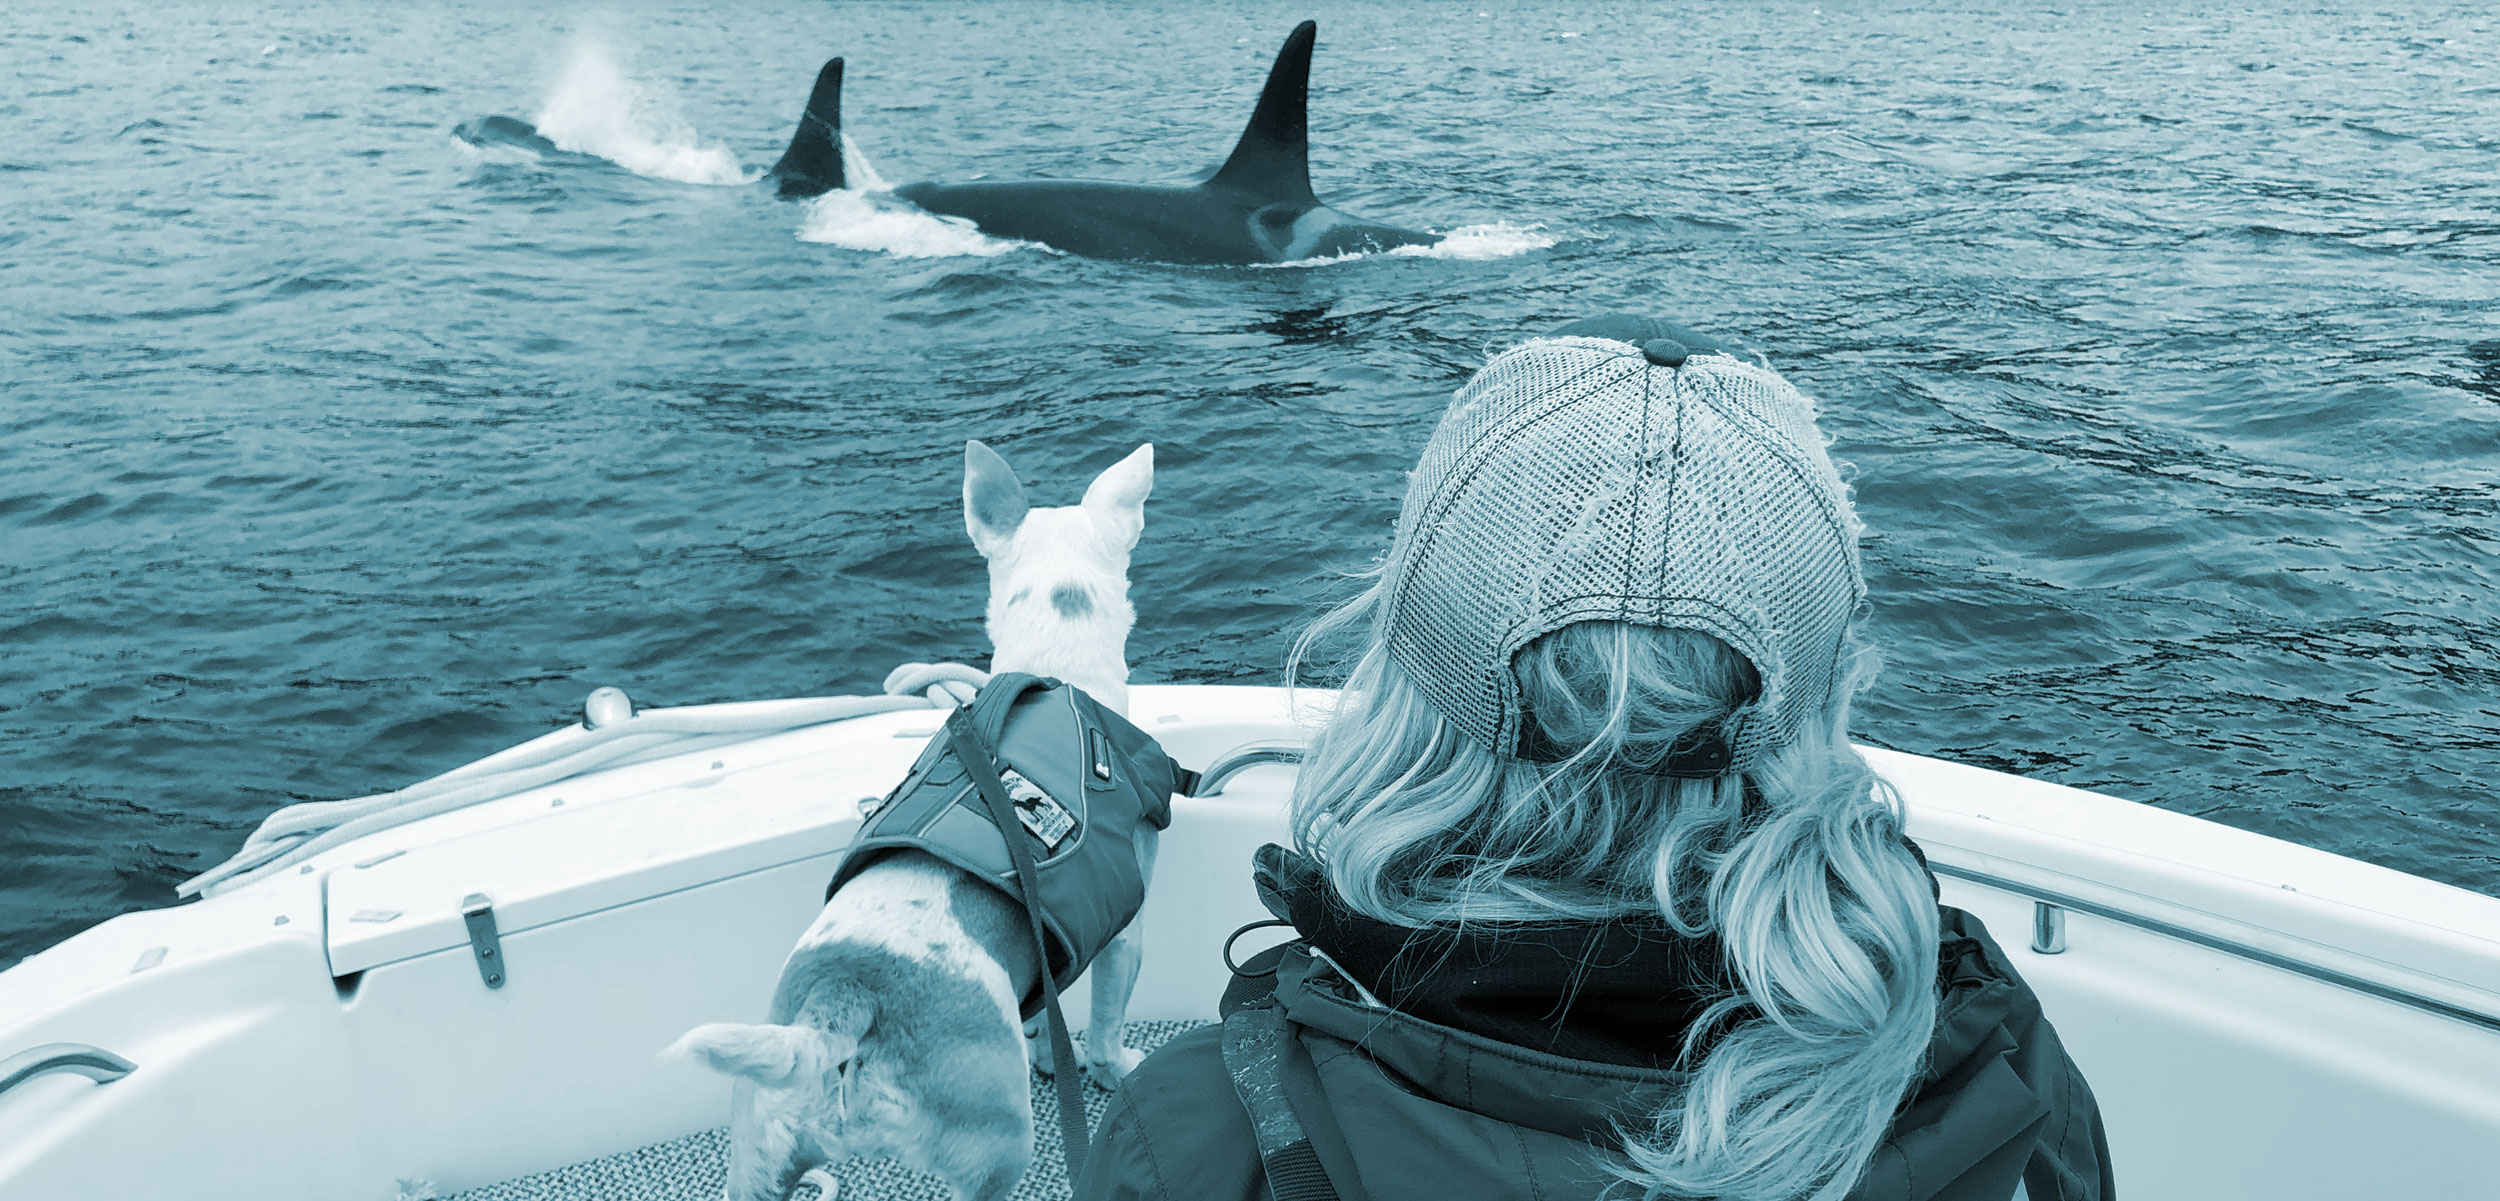 Eba and biologist Deborah Giles, watch killer whales